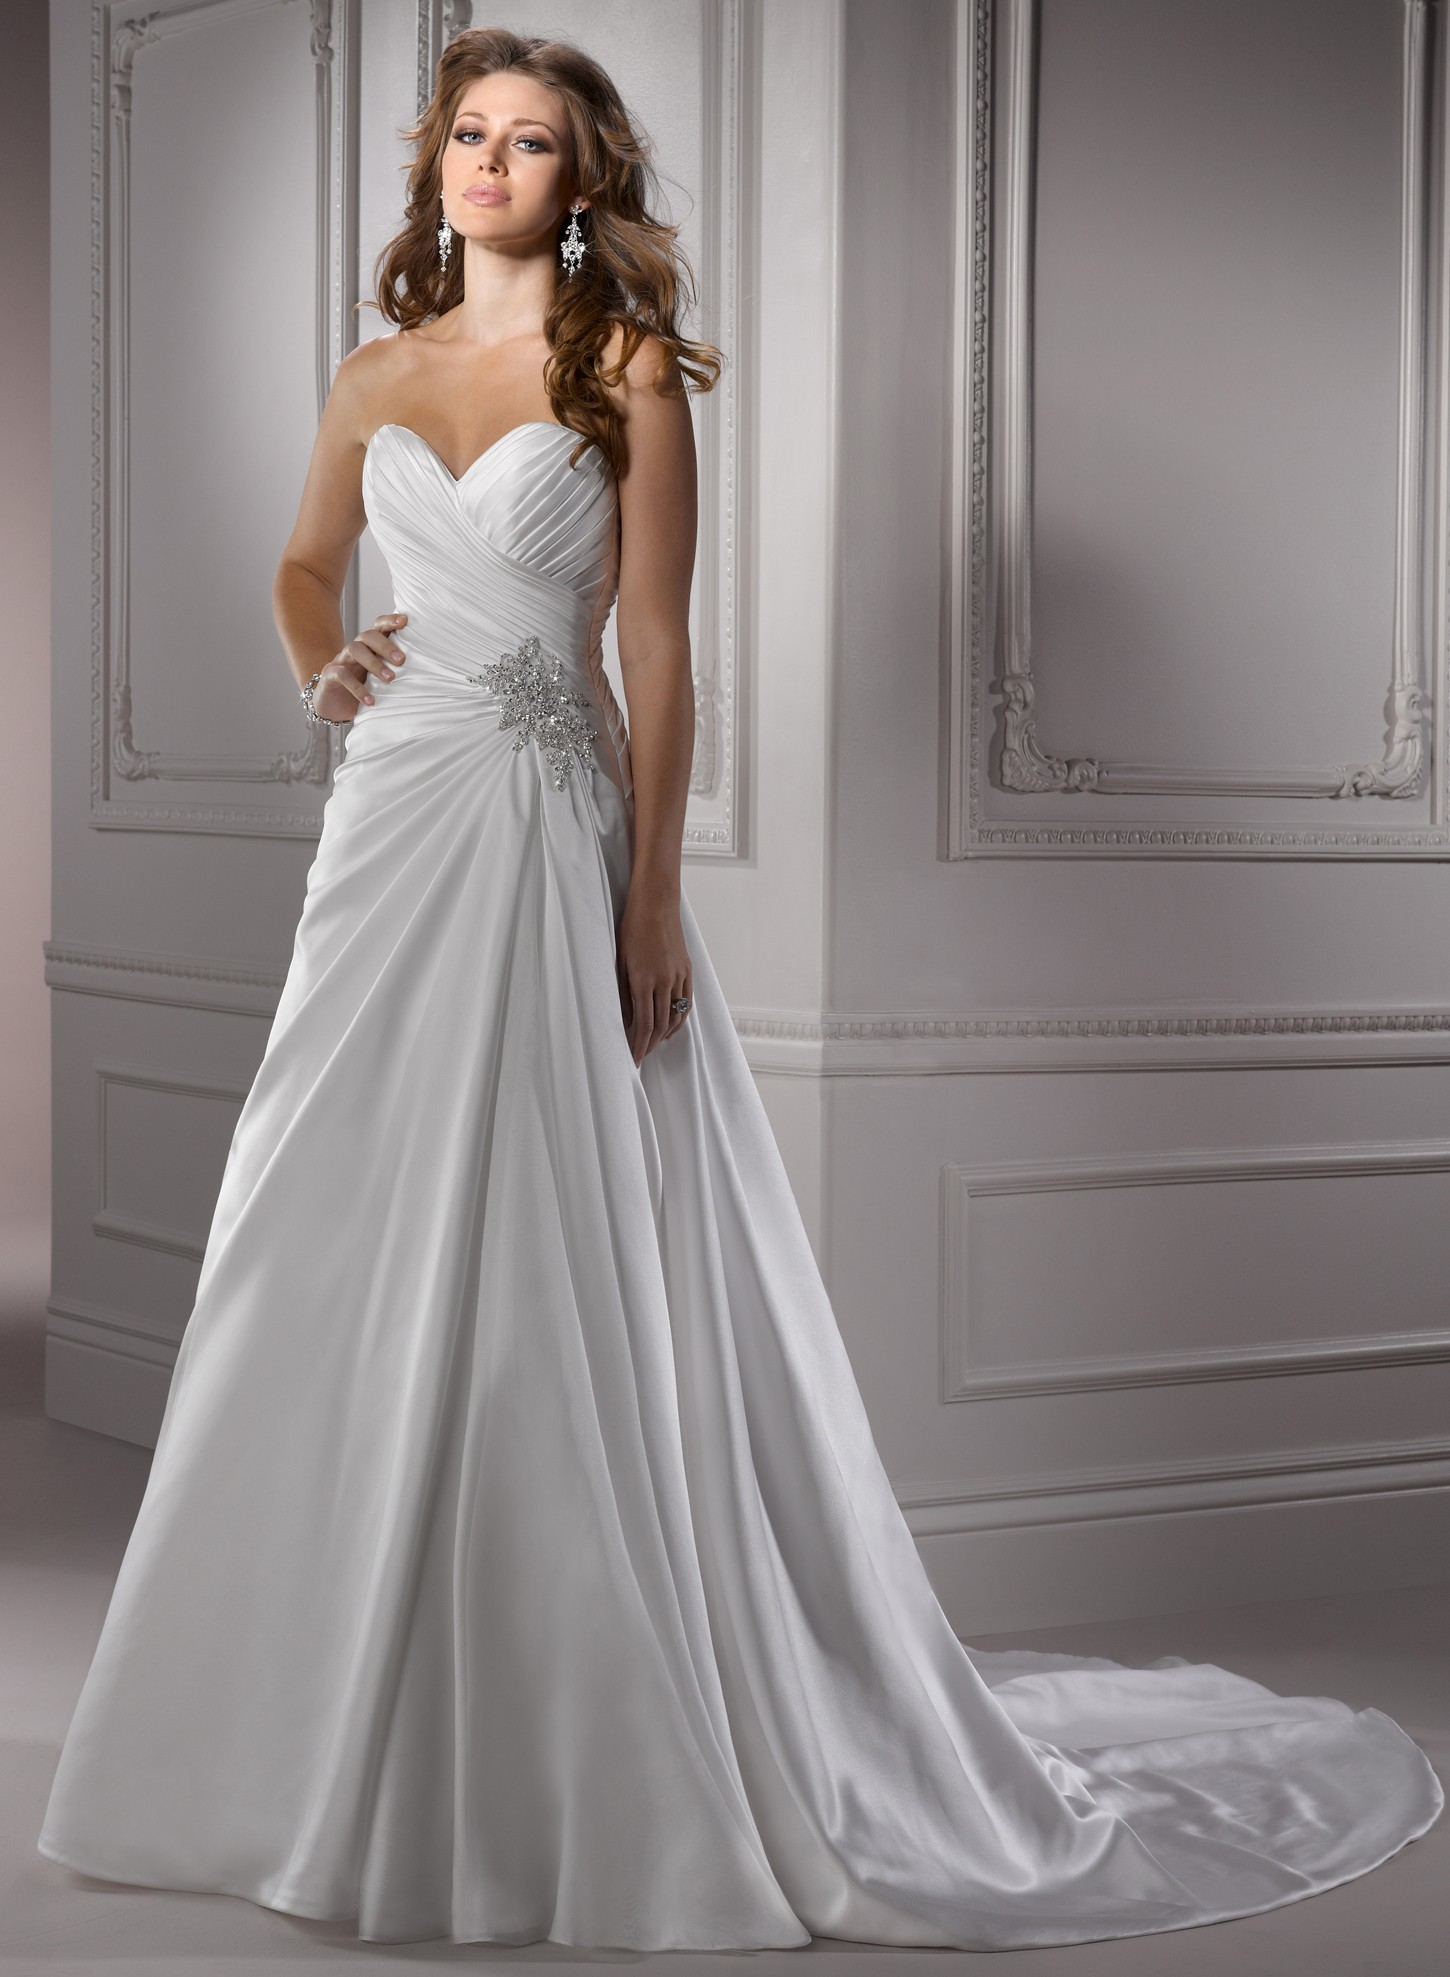 Satin sweetheart wedding dress sangmaestro for A line wedding dresses sweetheart neckline